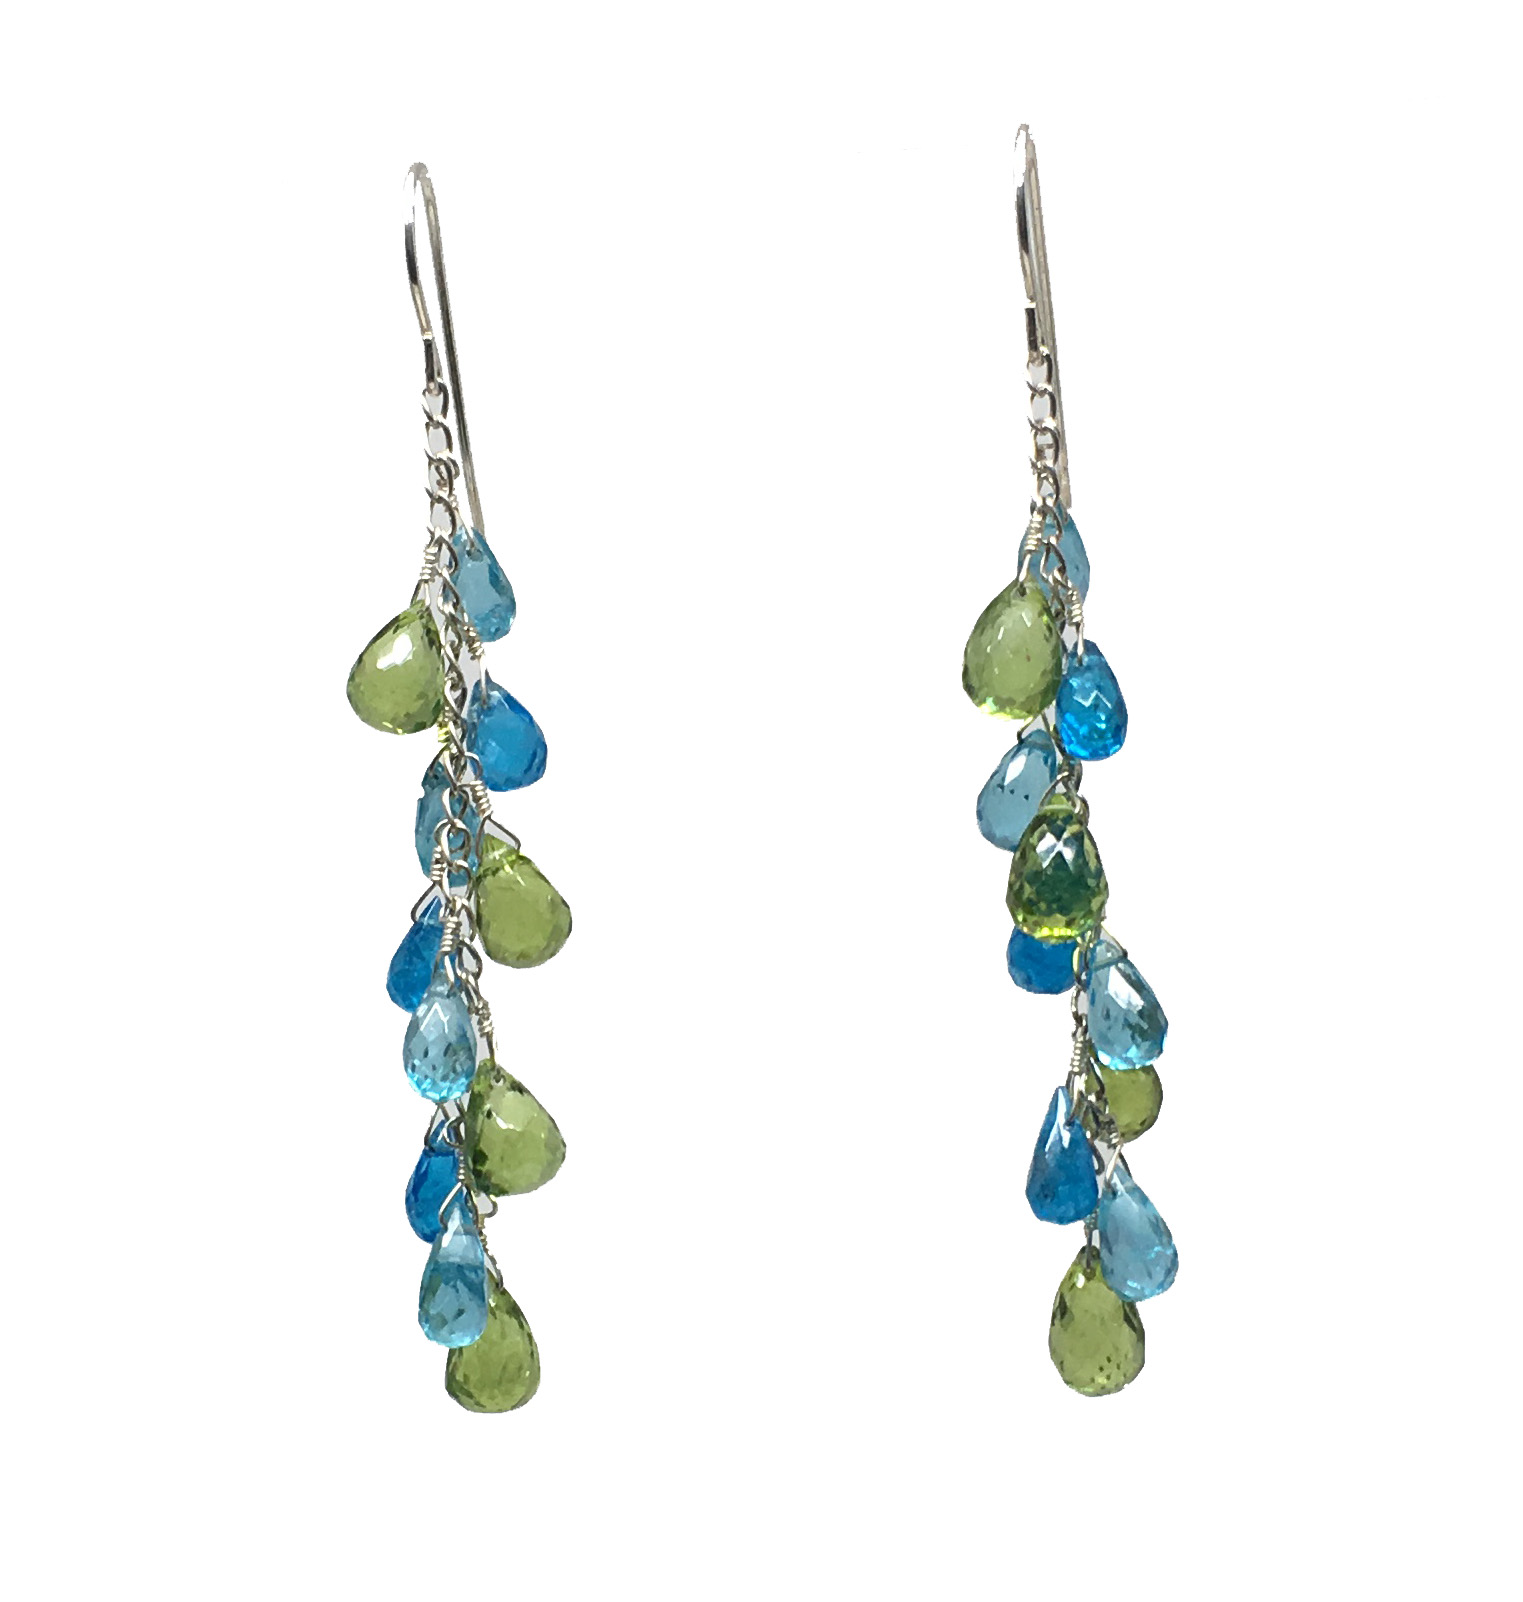 shop earrings silver ladies gemstone and apatite handmade aquamarine